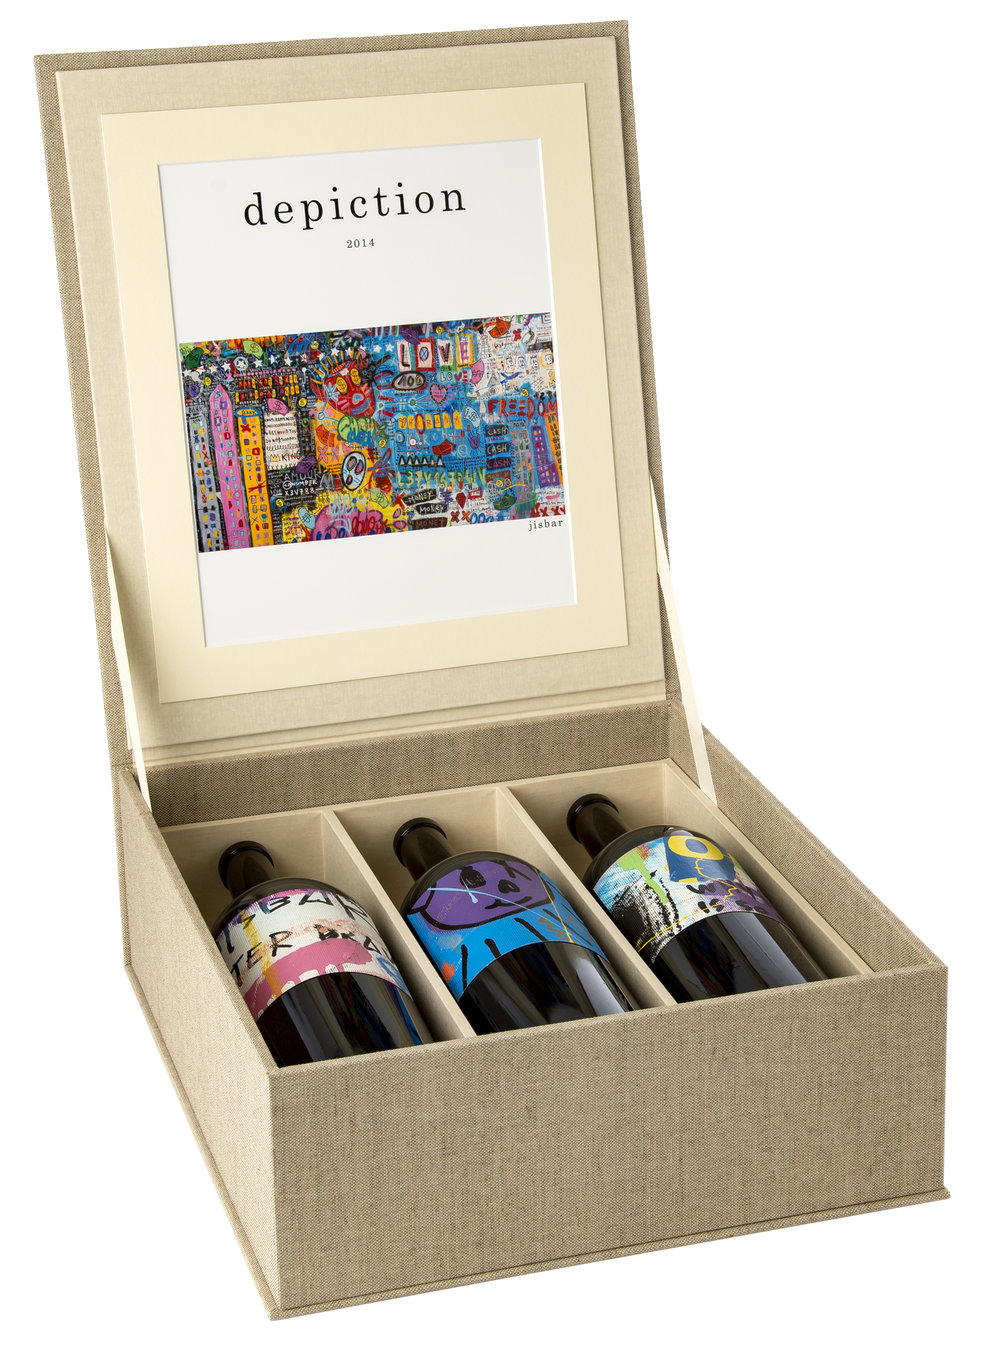 The Depiction Wines 2014 vintage is available as a box set of 3 magnum bottles.